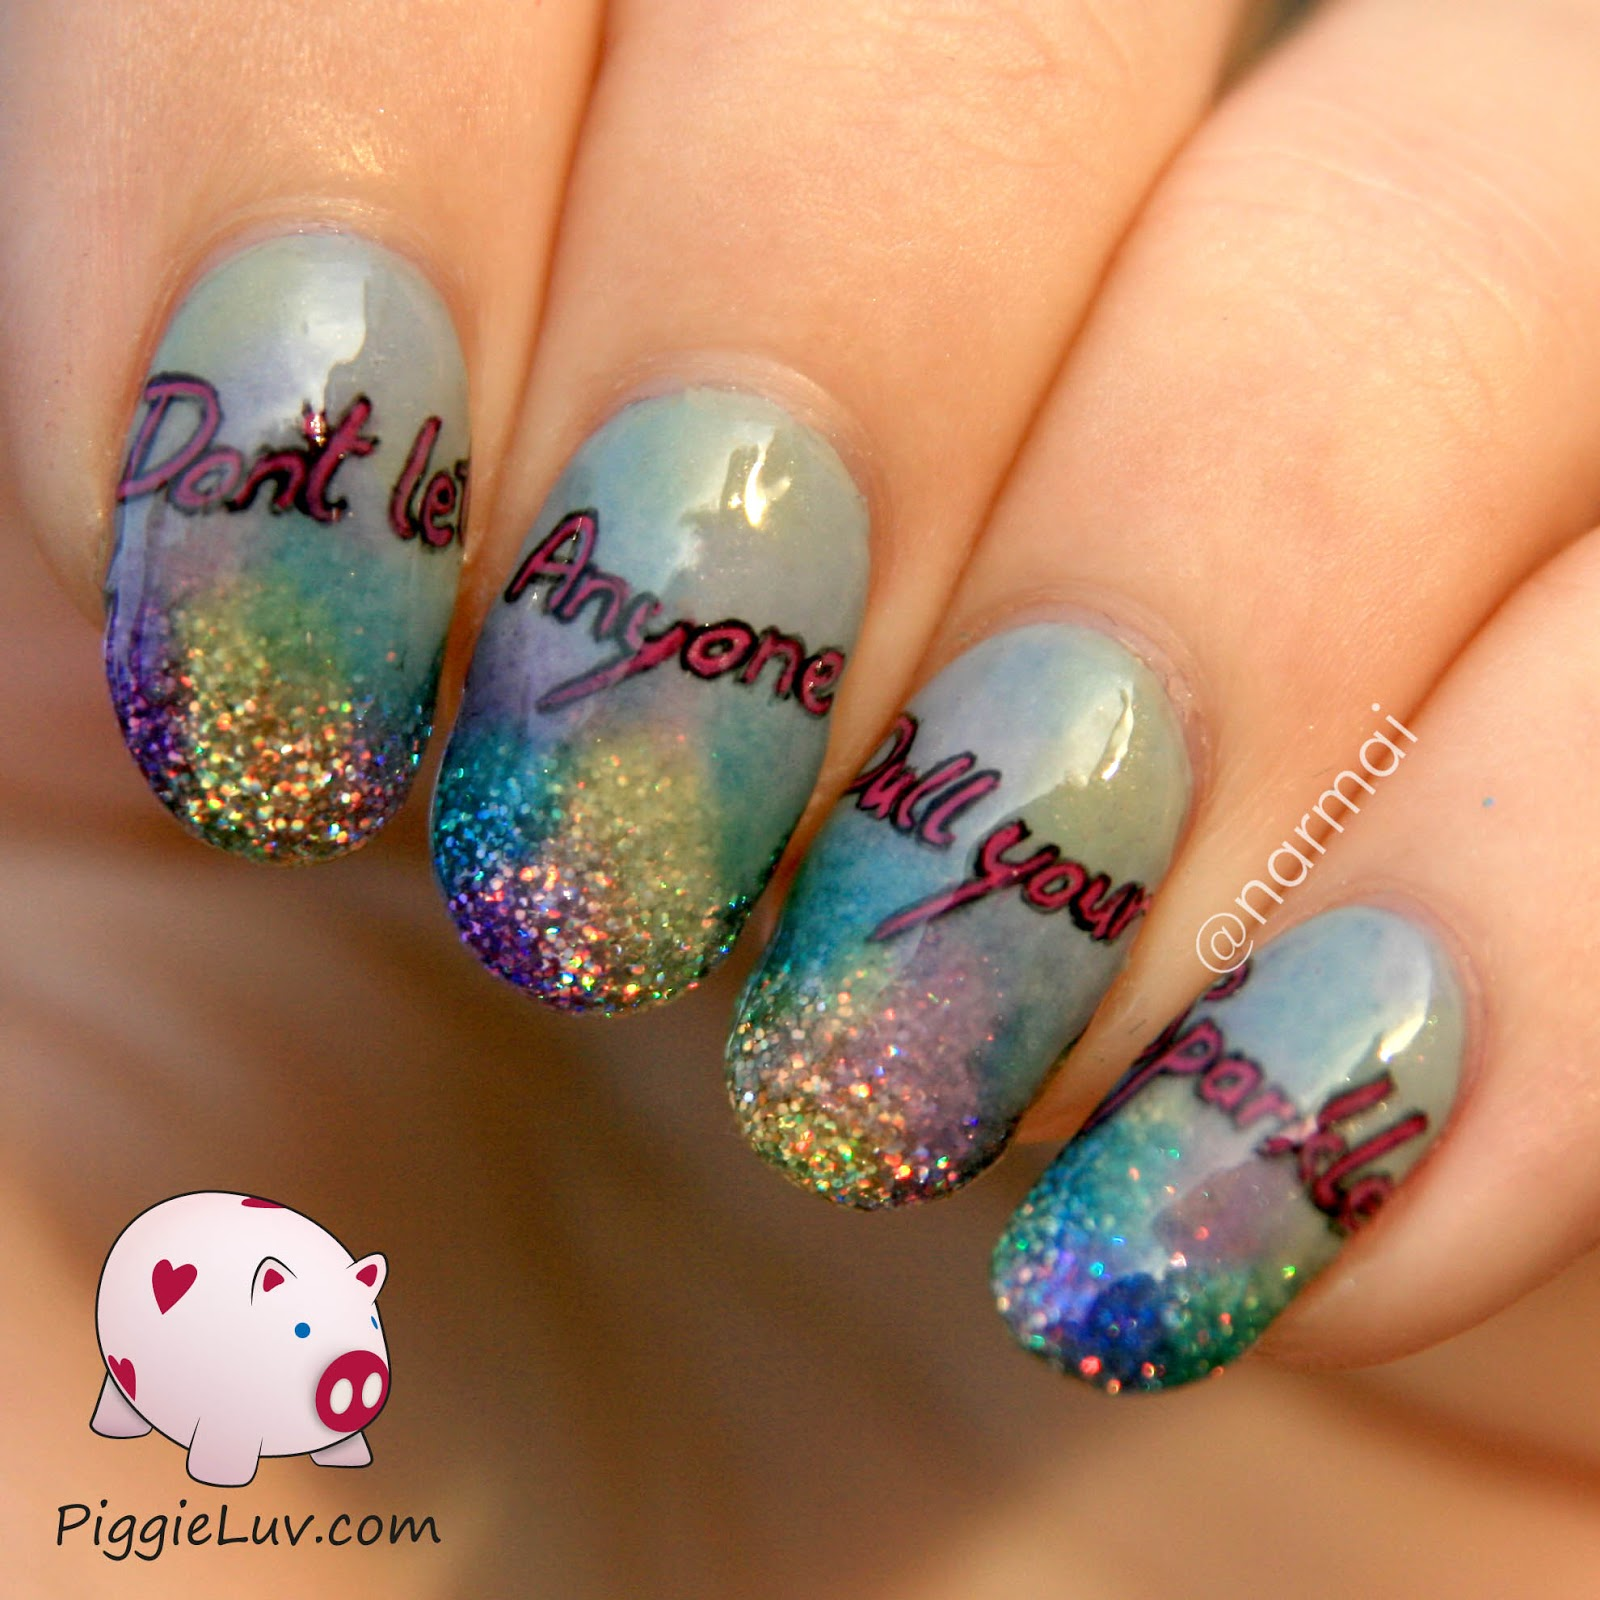 PiggieLuv: Don\'t let anyone dull your sparkle! Nail art with a message